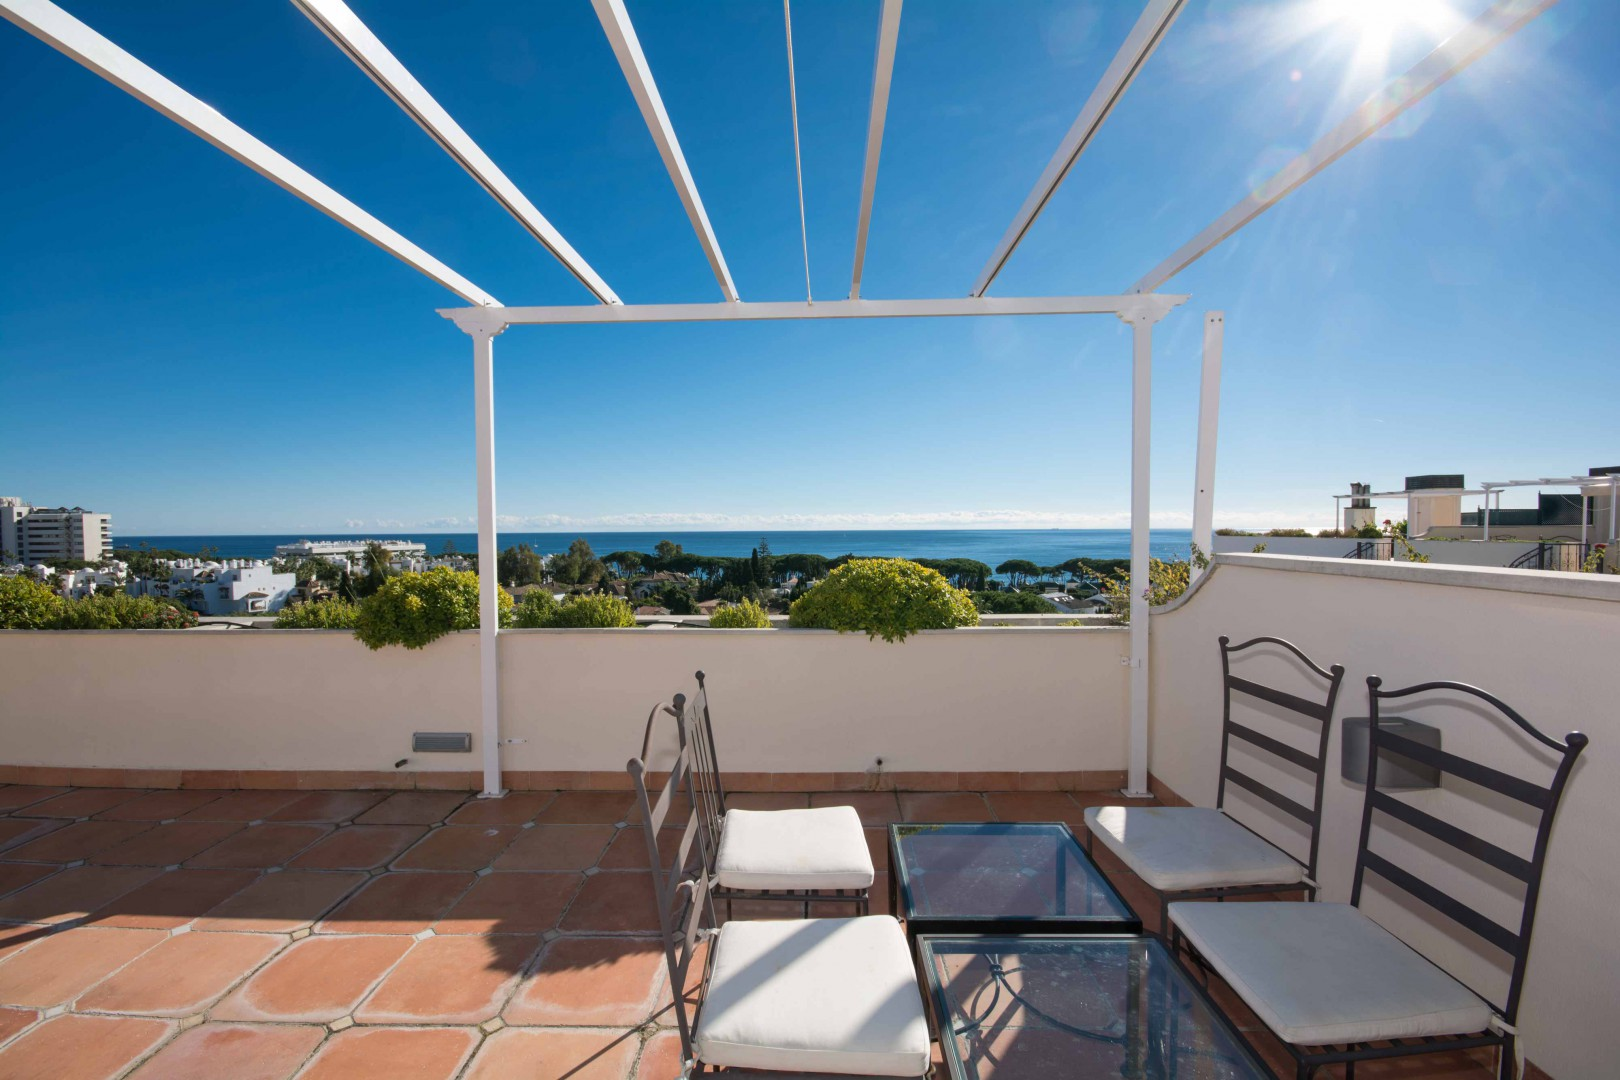 Penthouse te koop op de golden mile in marbella spanje specials - Wind oog op de penthouse ...